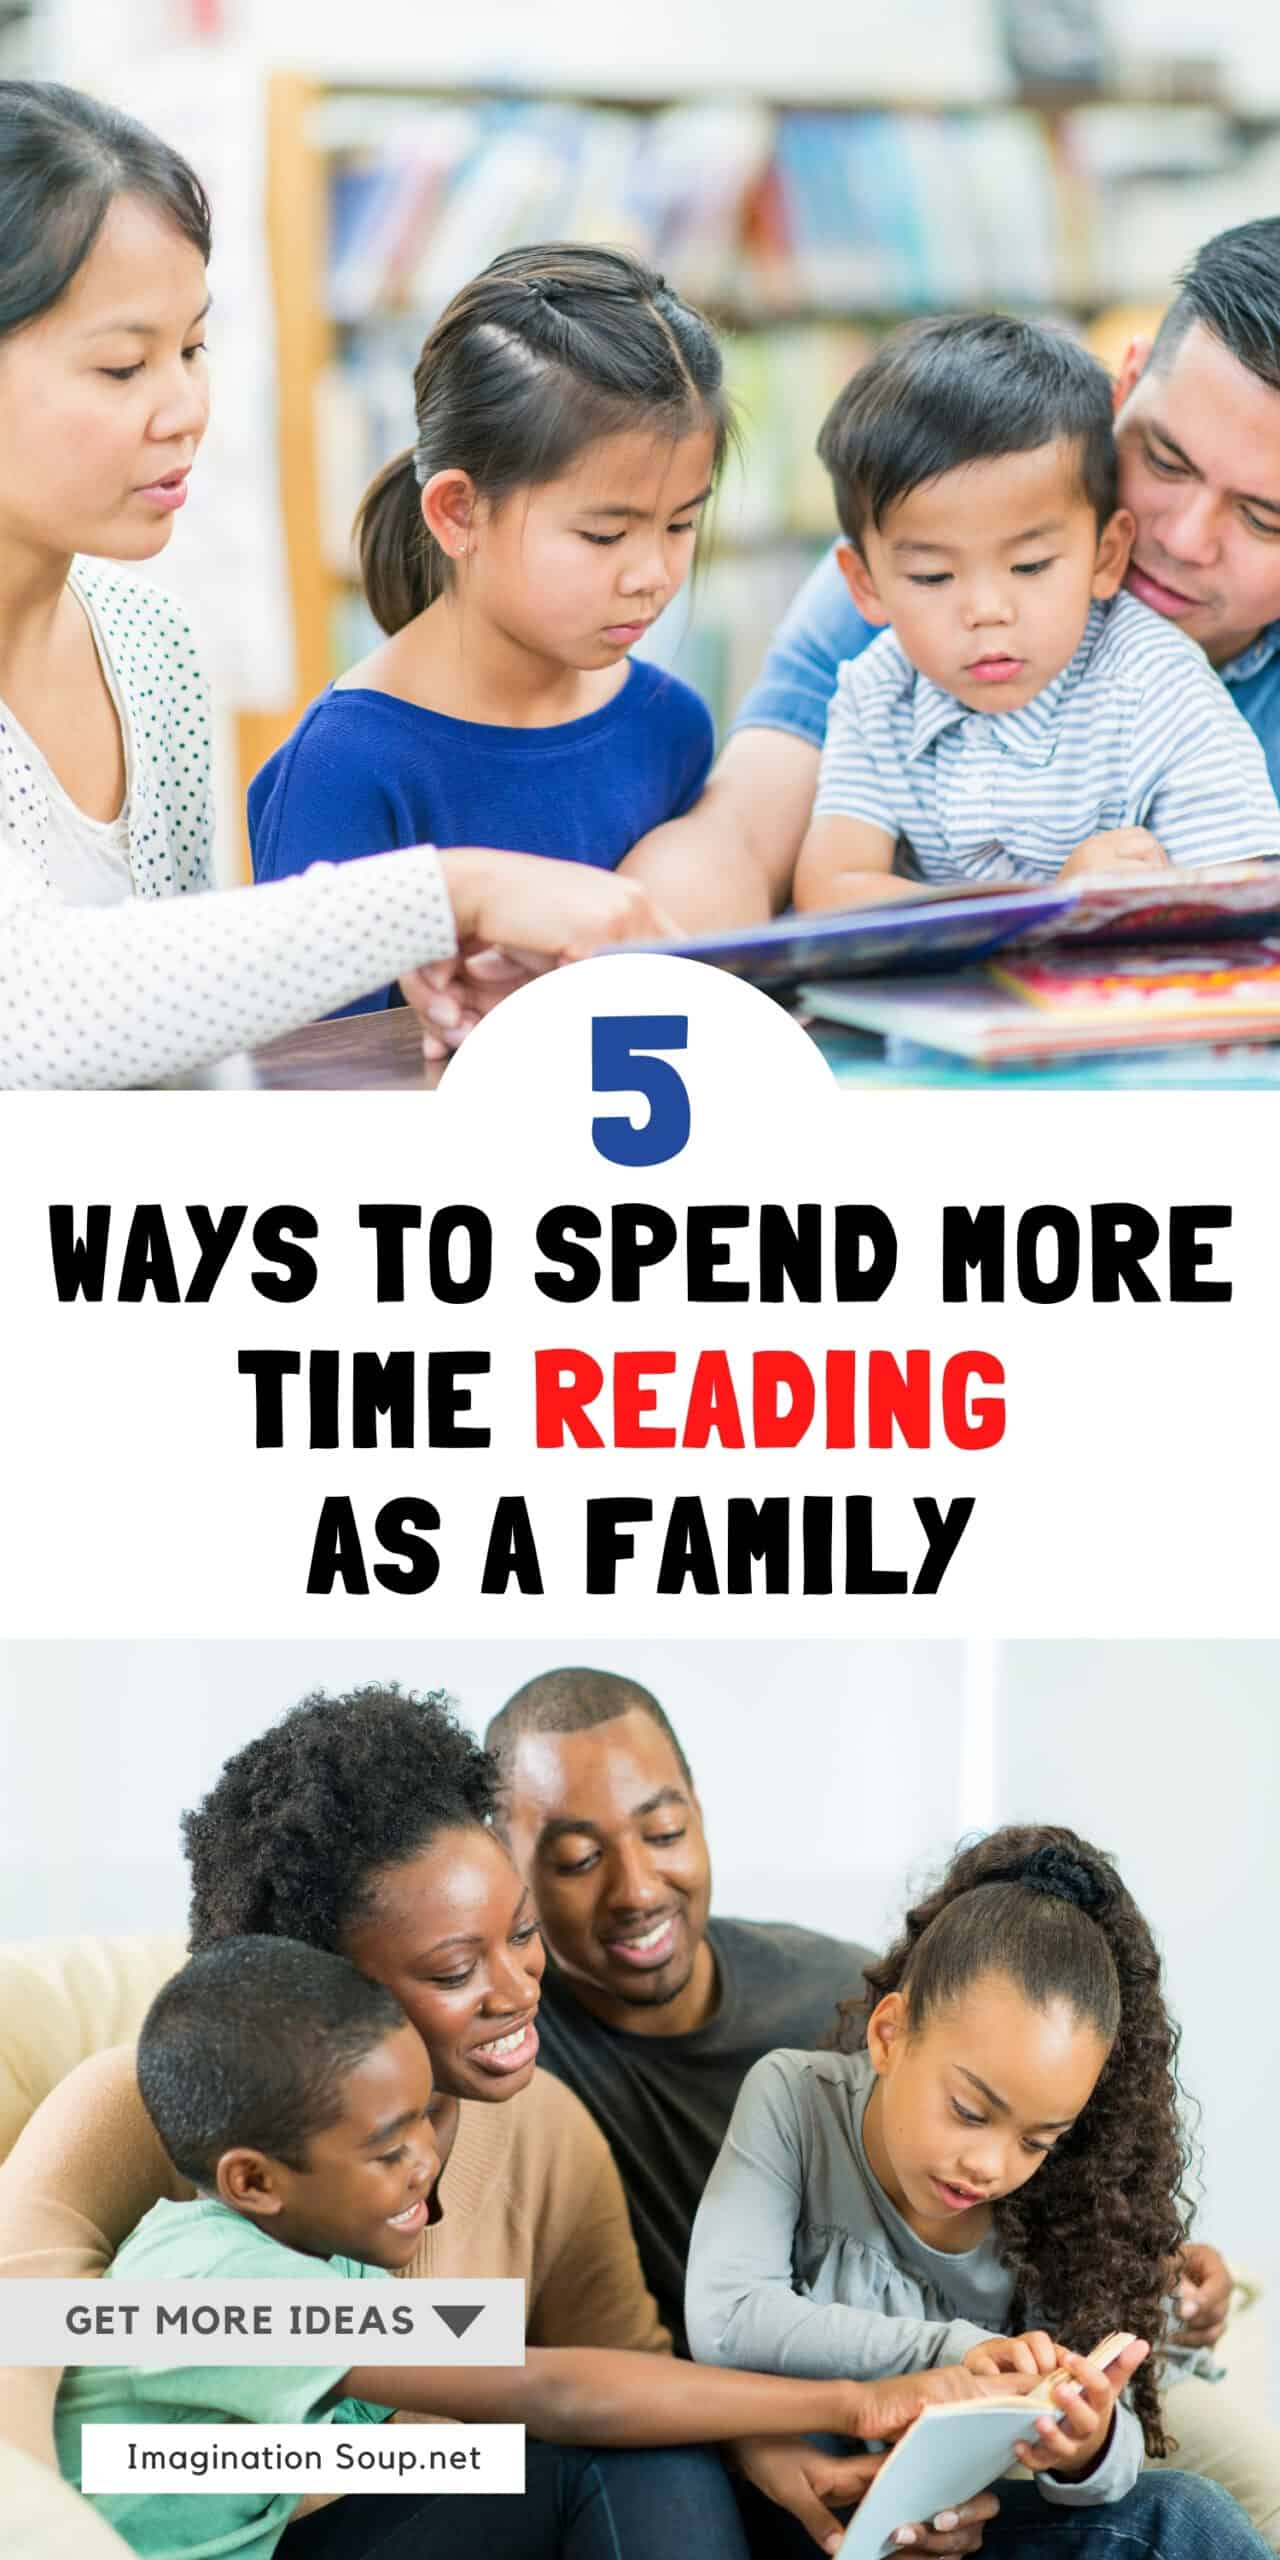 5 Ways to Spend More Time Reading as a Family